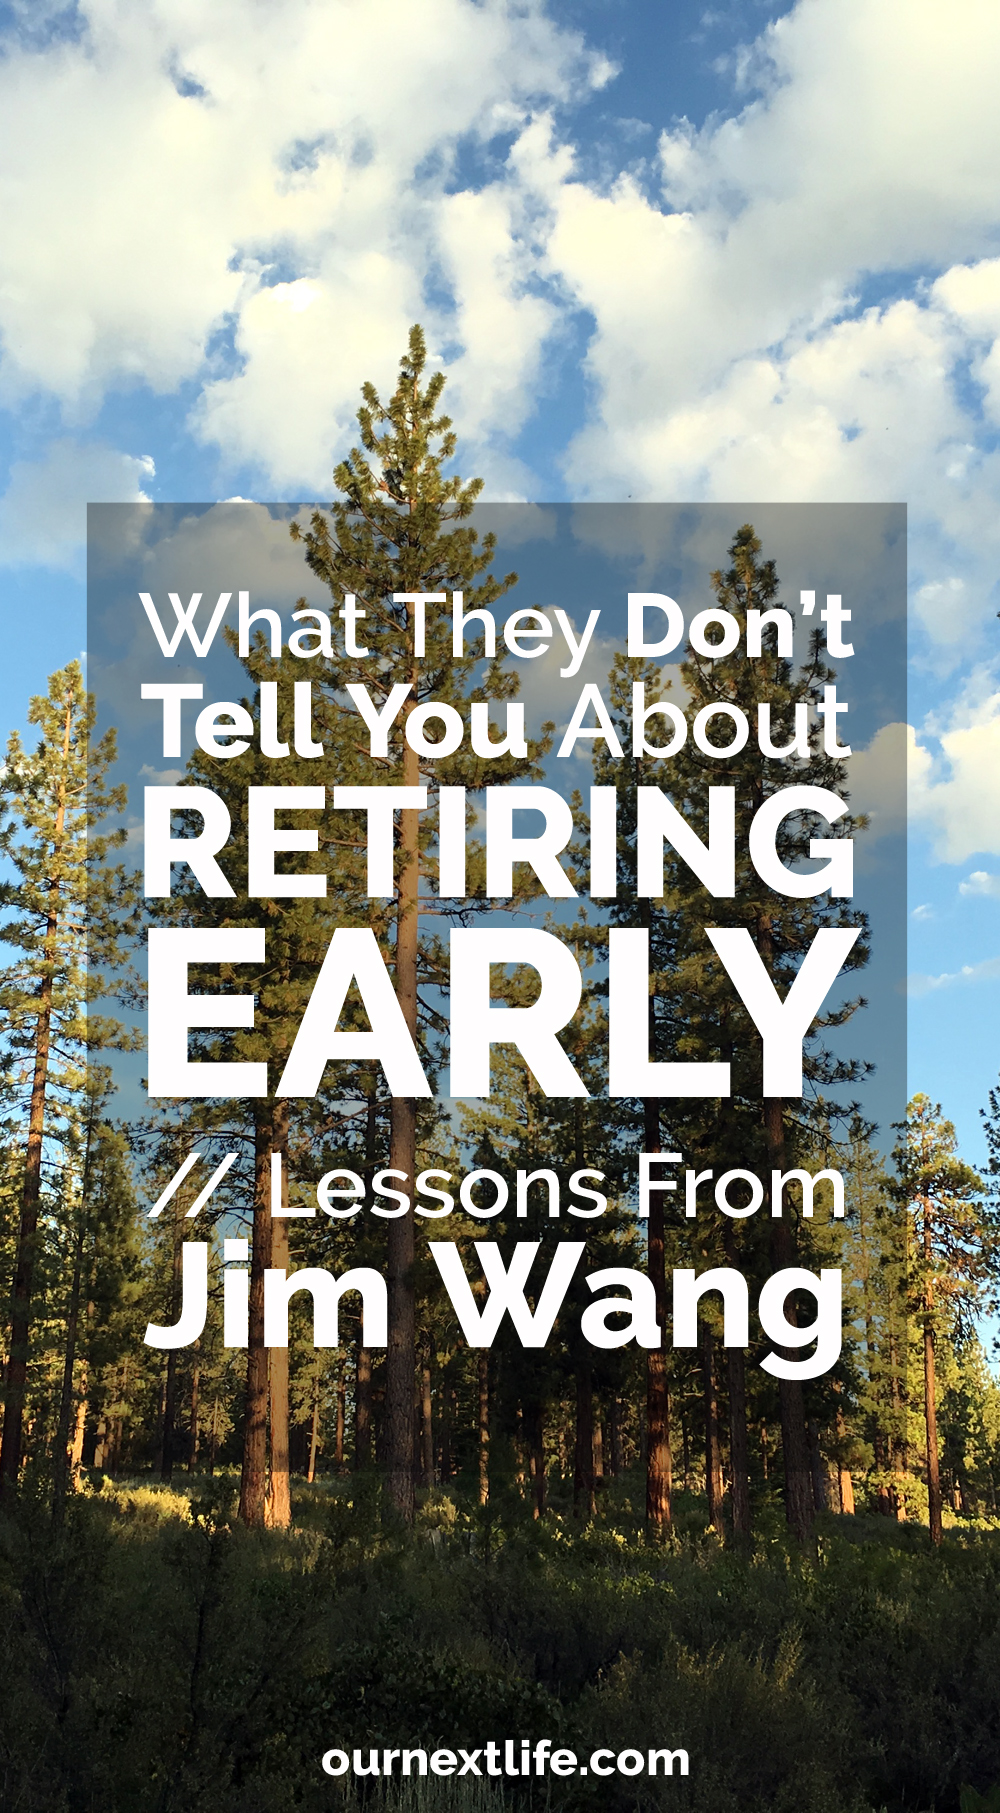 OurNextLife.com // What They Don't Tell You About Early Retirement, Lessons from Jim Wang // Jim retired at age 30 after selling his massively successful blog. But what he learned immediately after that wasn't what he expected!